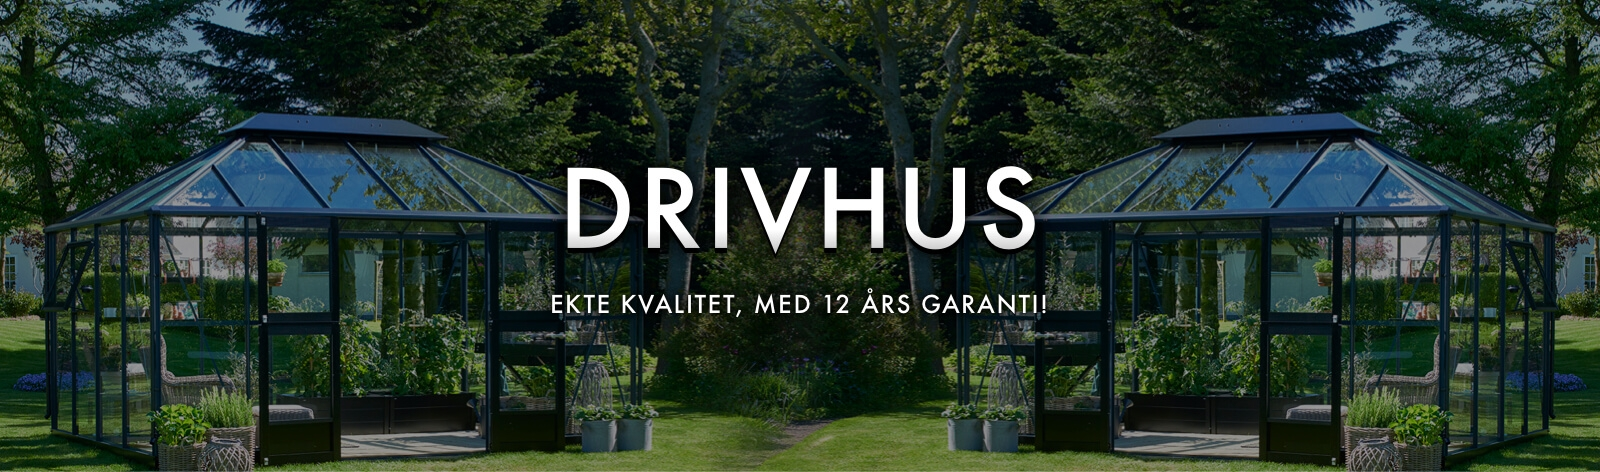 Compact Drivhus